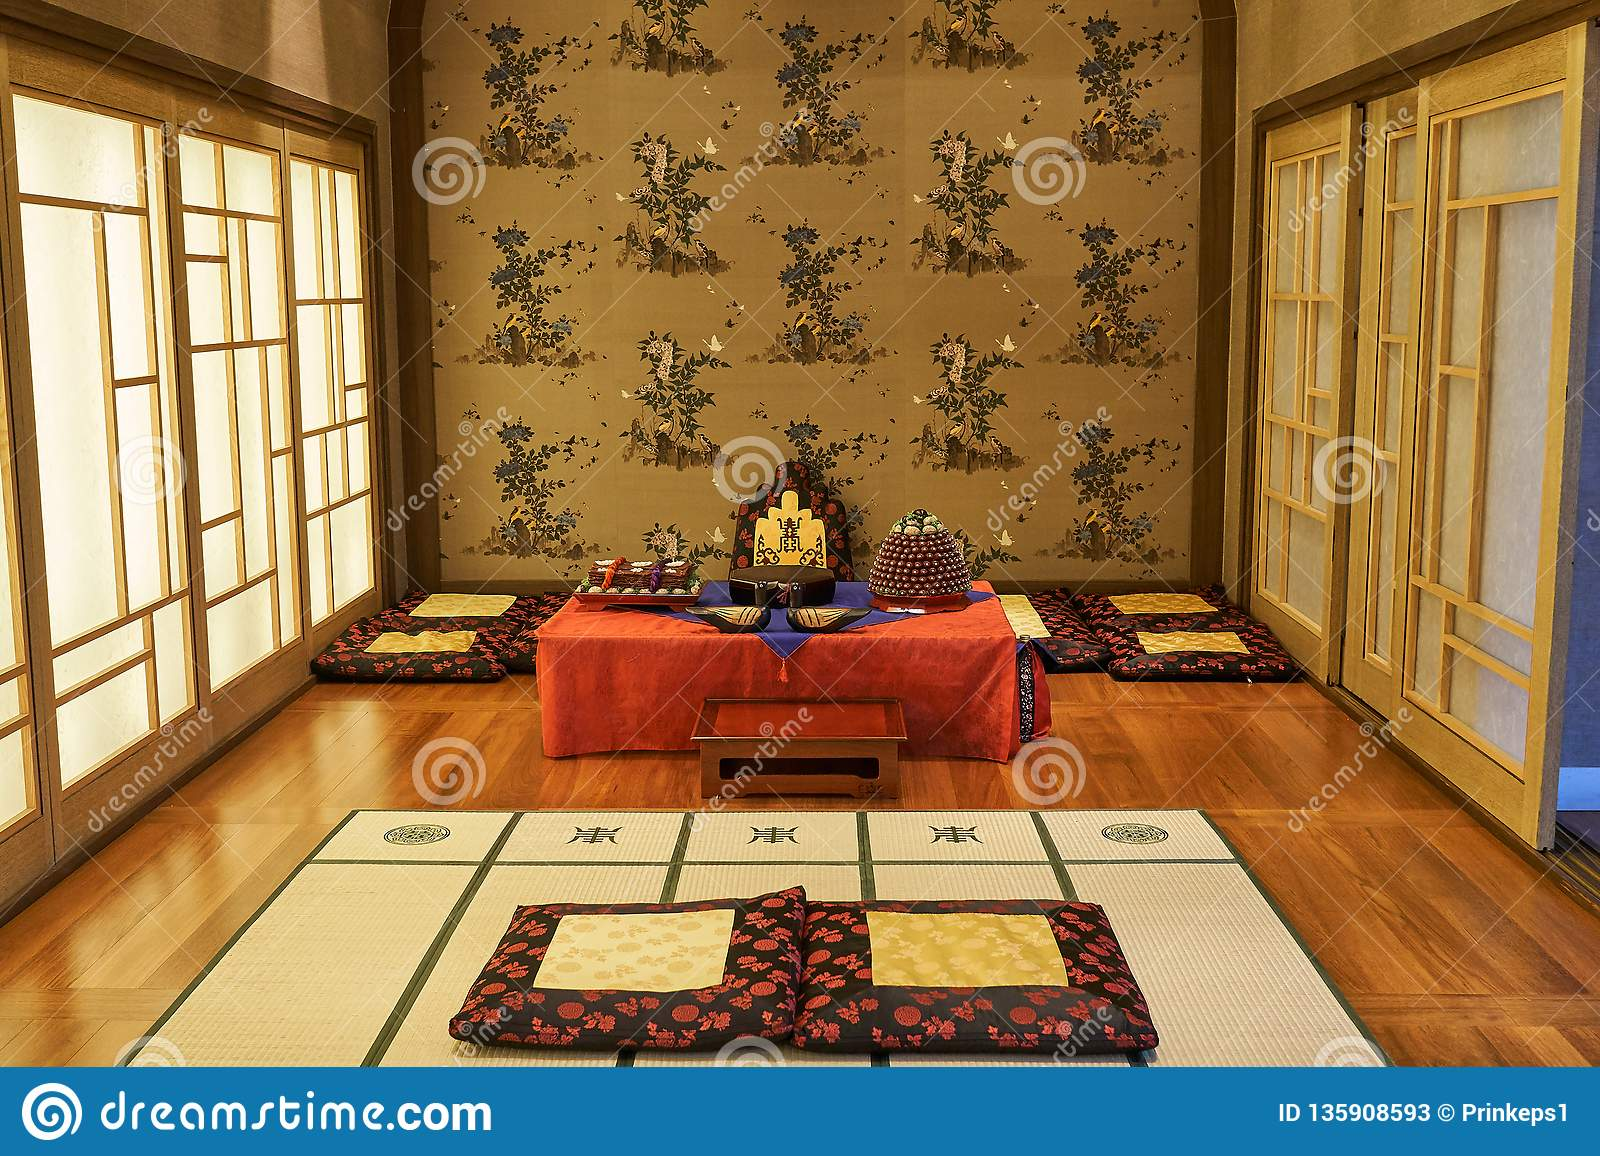 Room Designed With Korea S Traditional Decorations And Foods For Ceremony Of Newly Wed Couples And Their Families Stock Image Image Of Inside Design 135908593